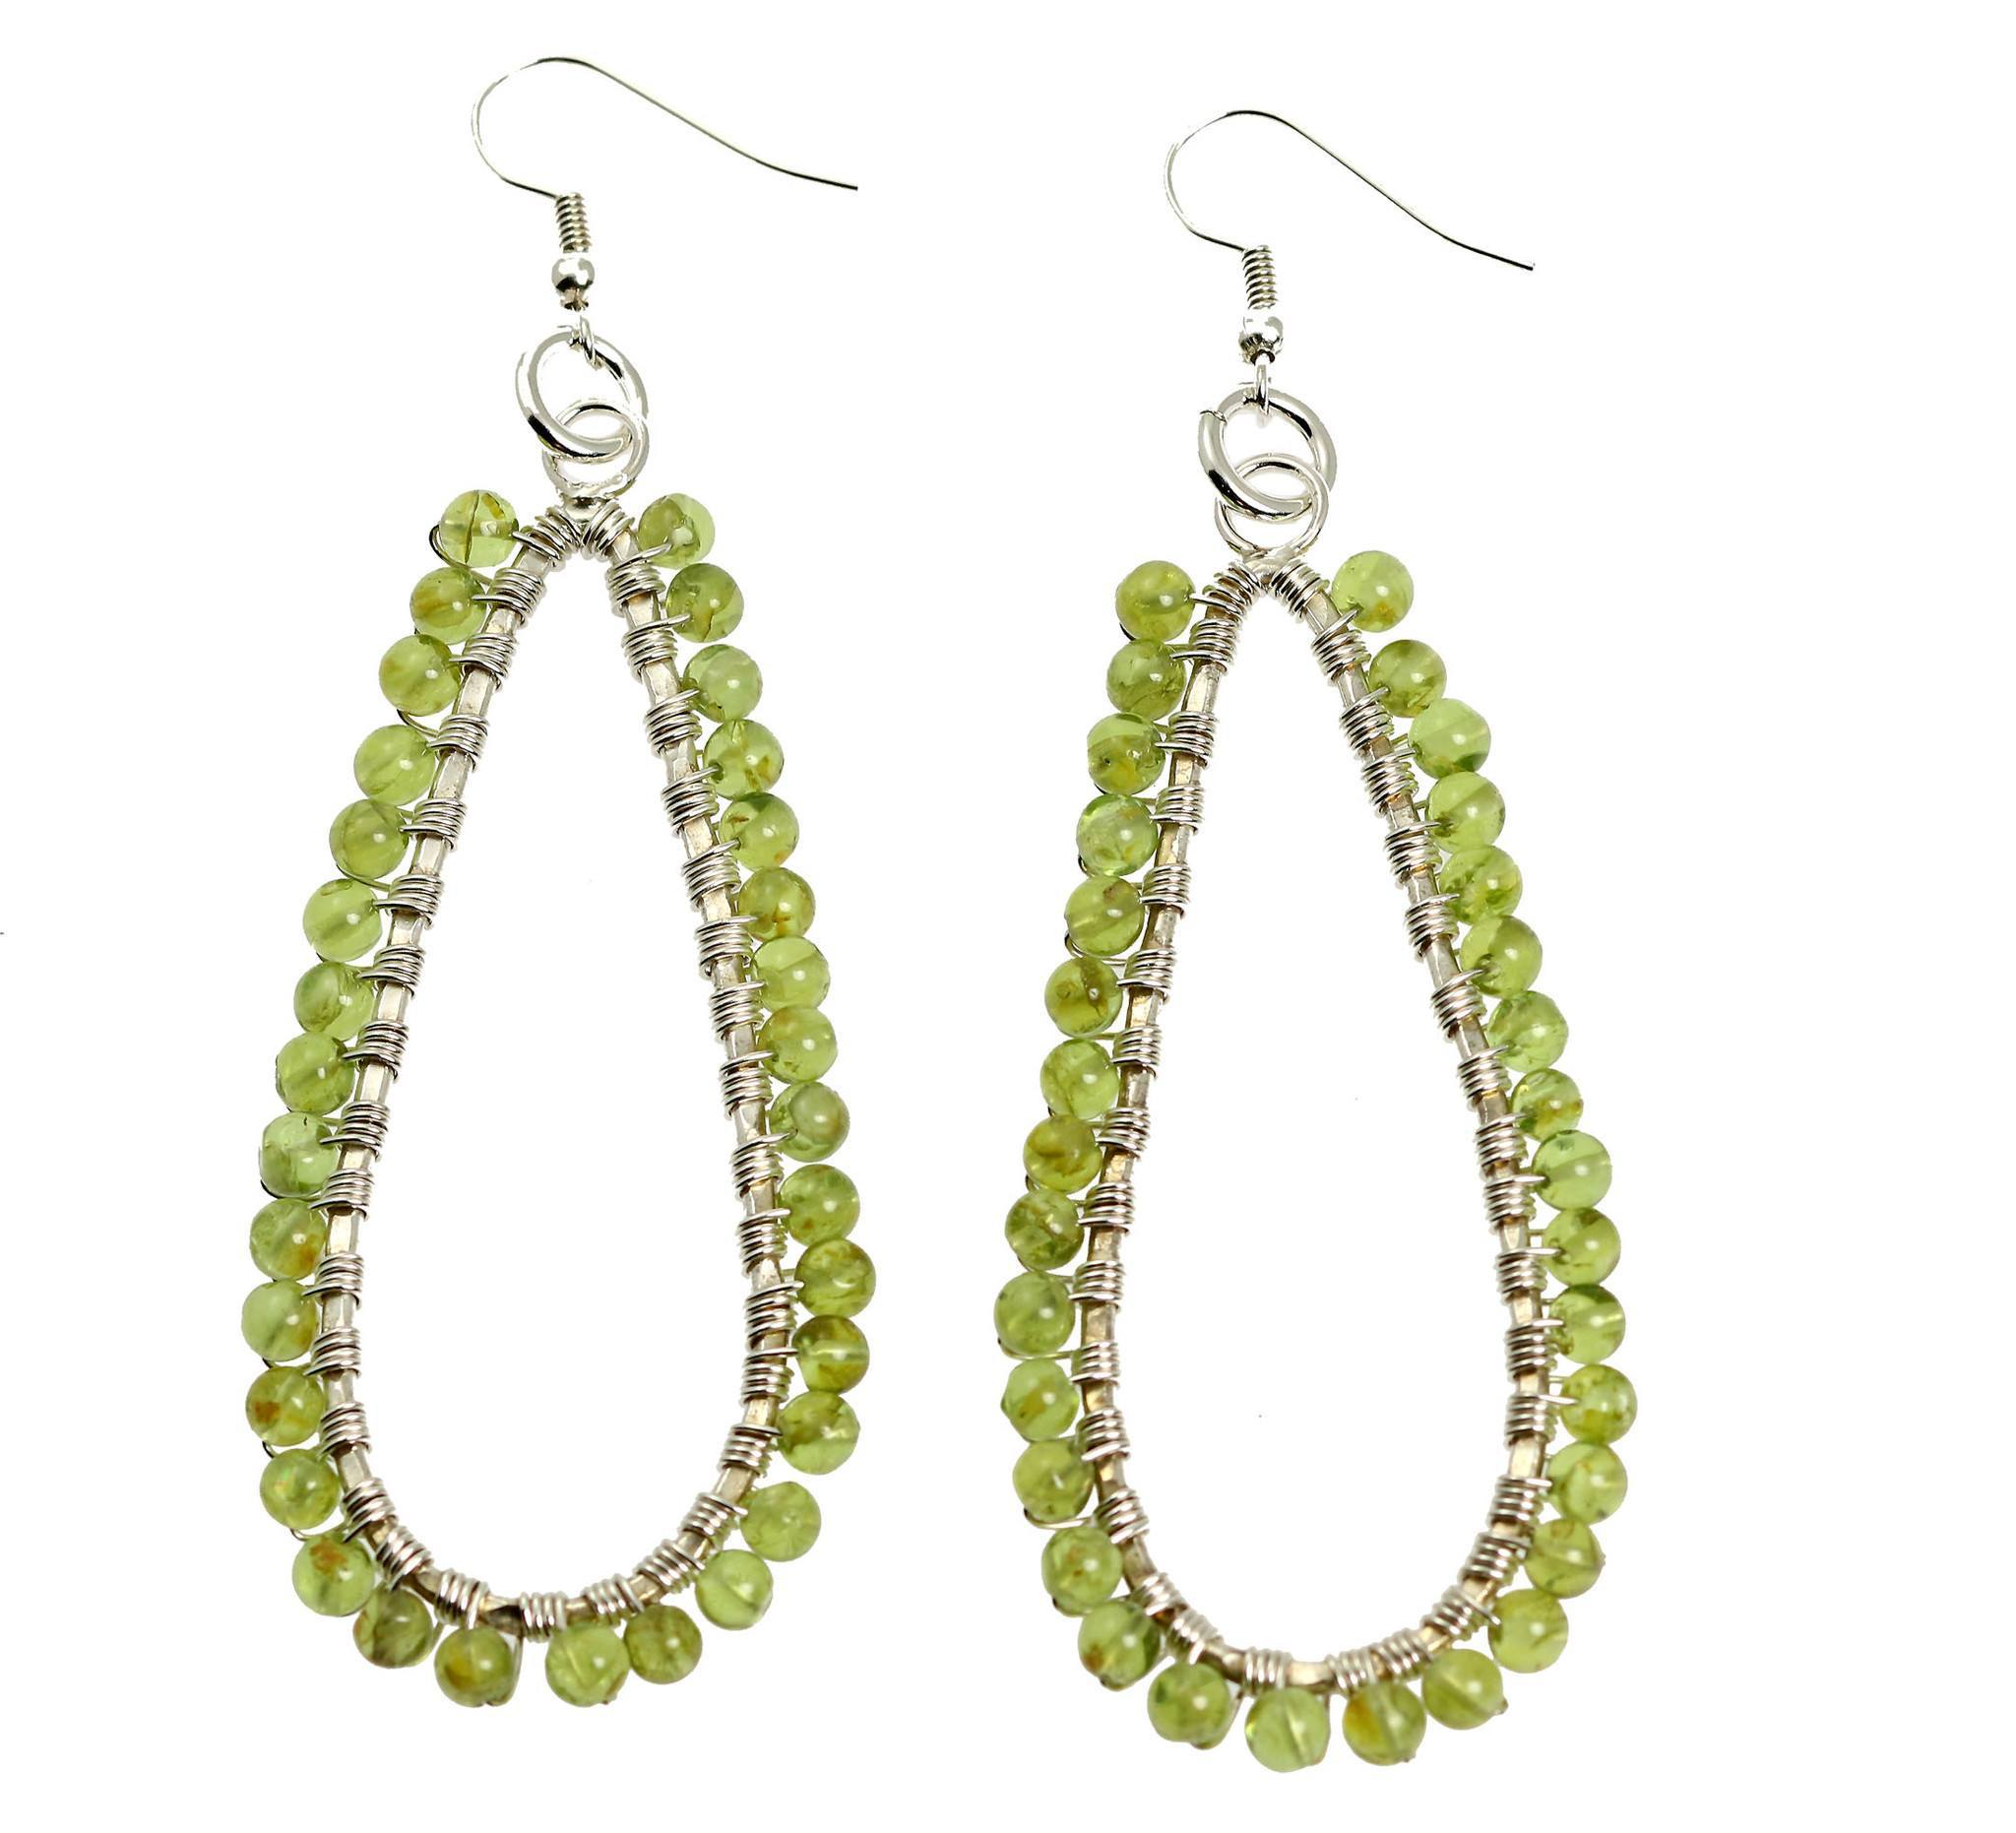 dsc journey hand peridot a carved earrings shop jewelry face art through